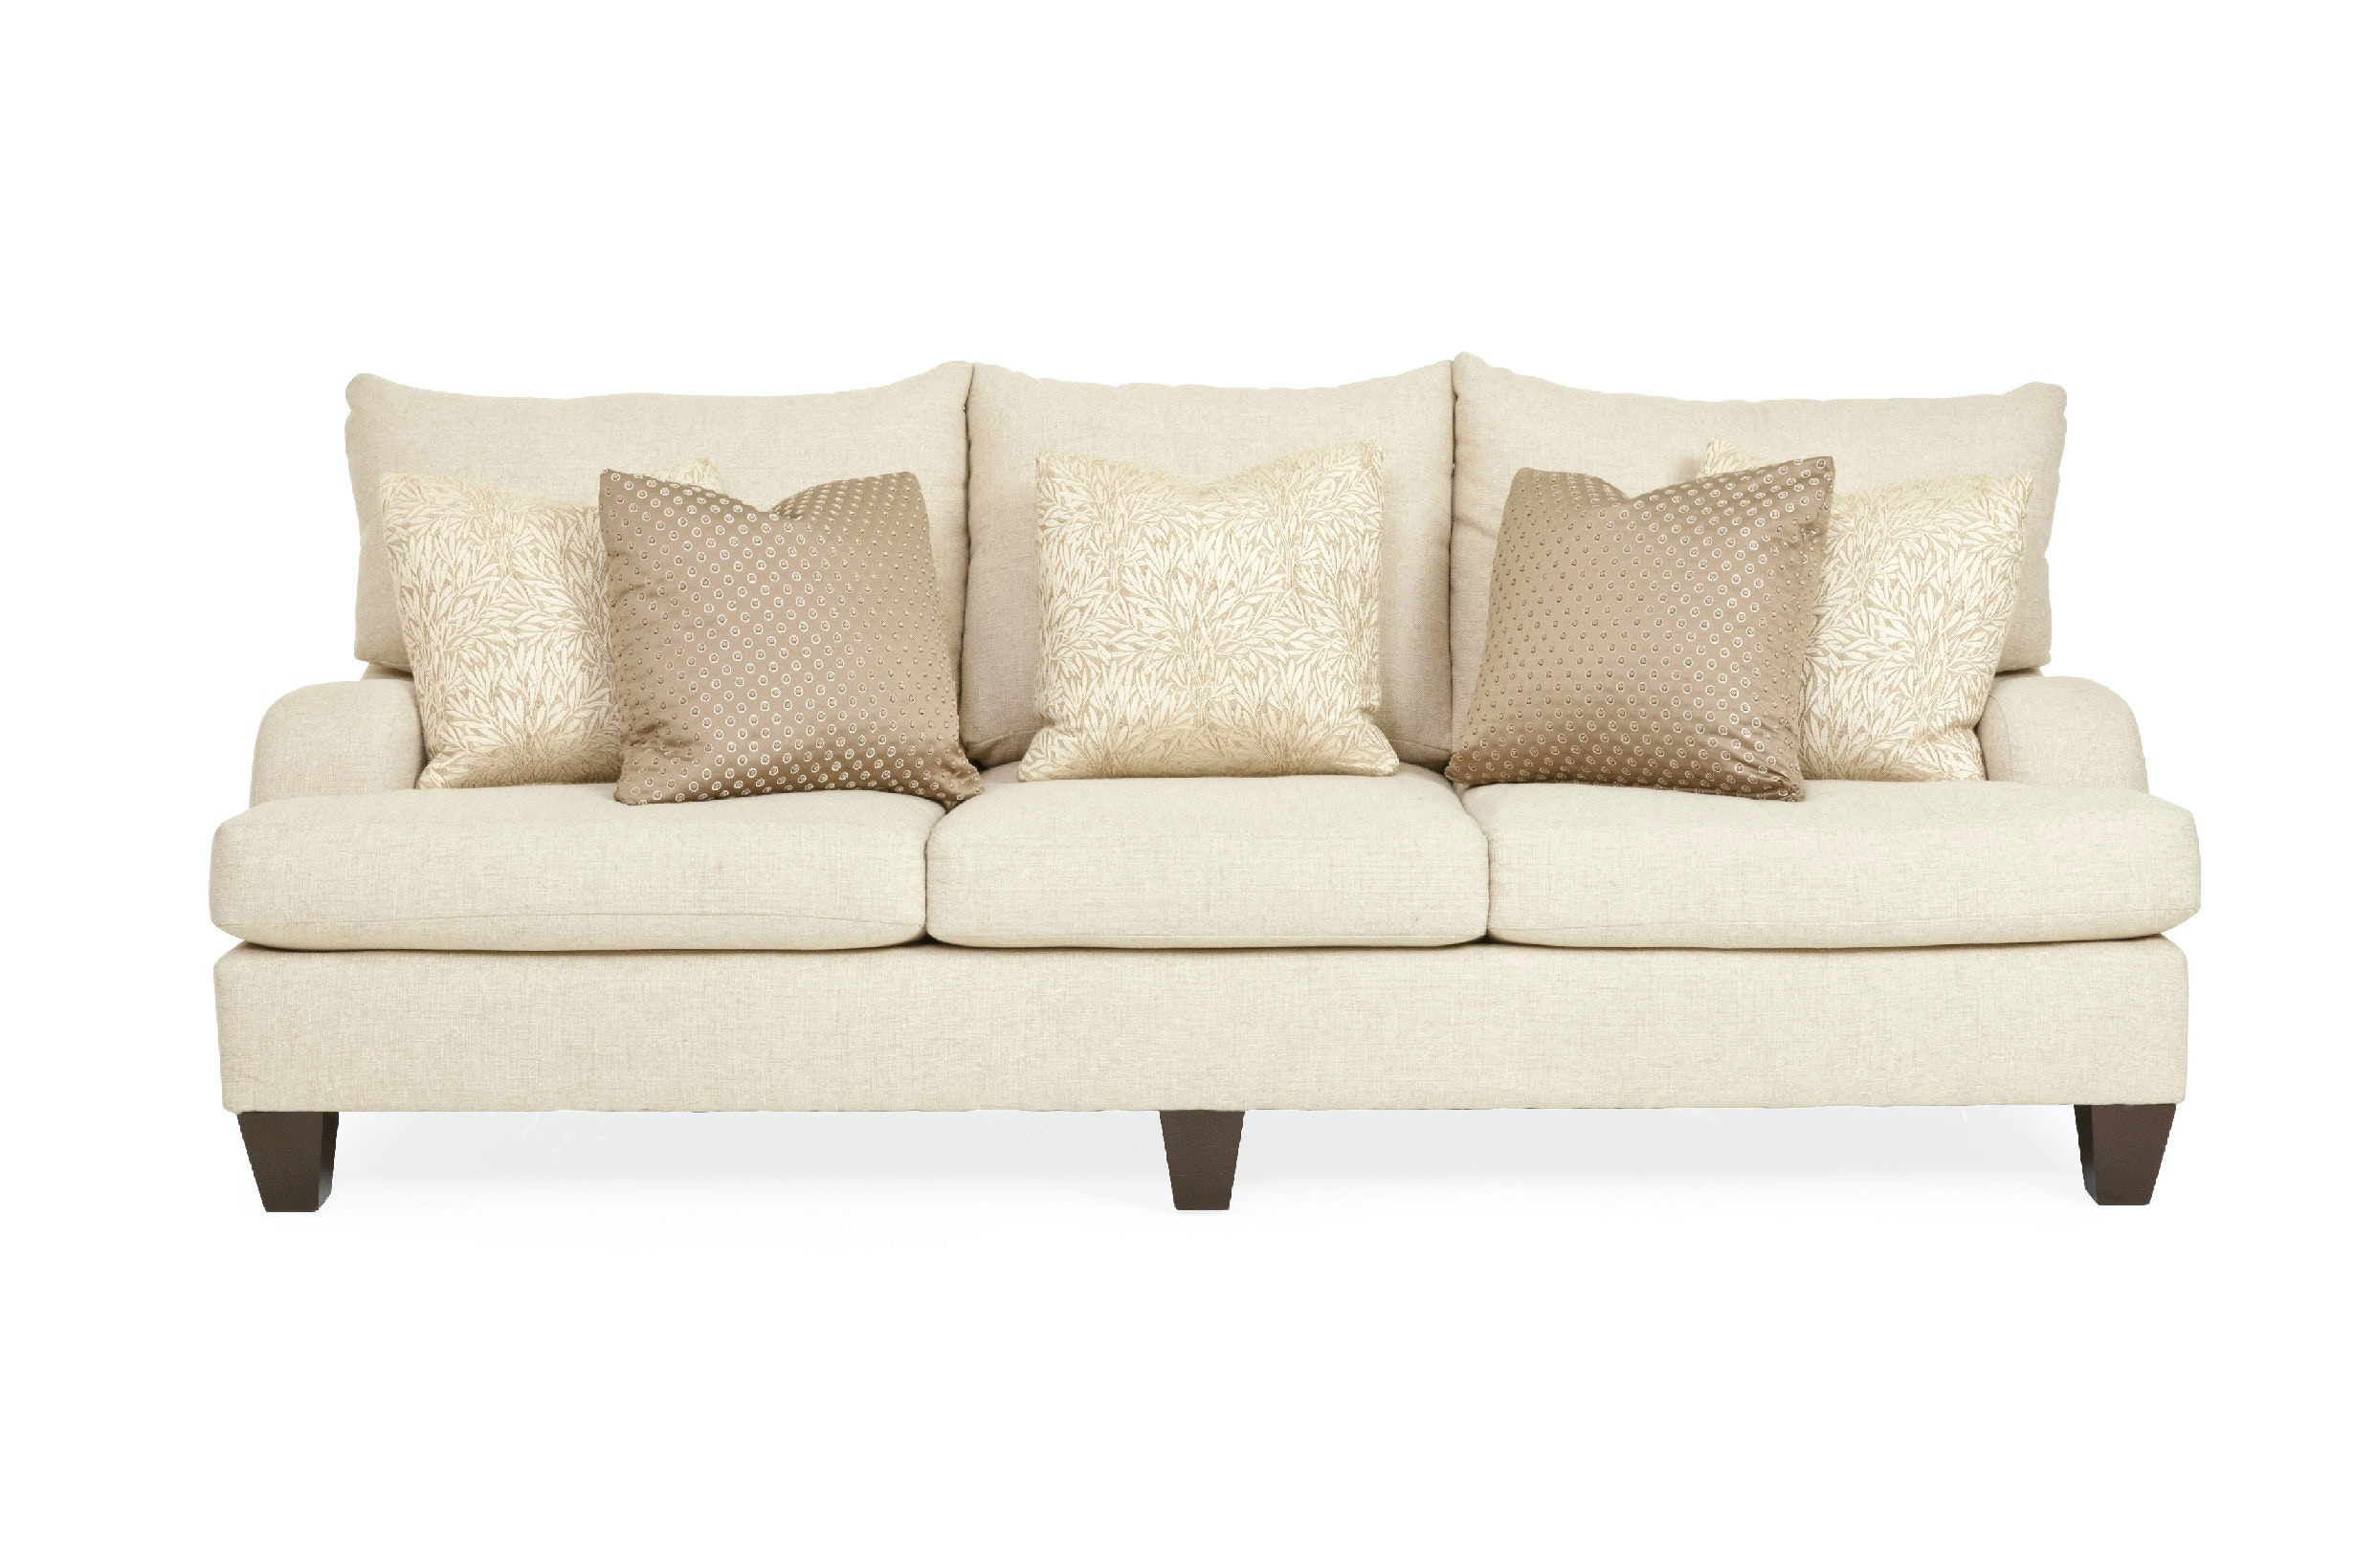 Charmant Brooke Sofa